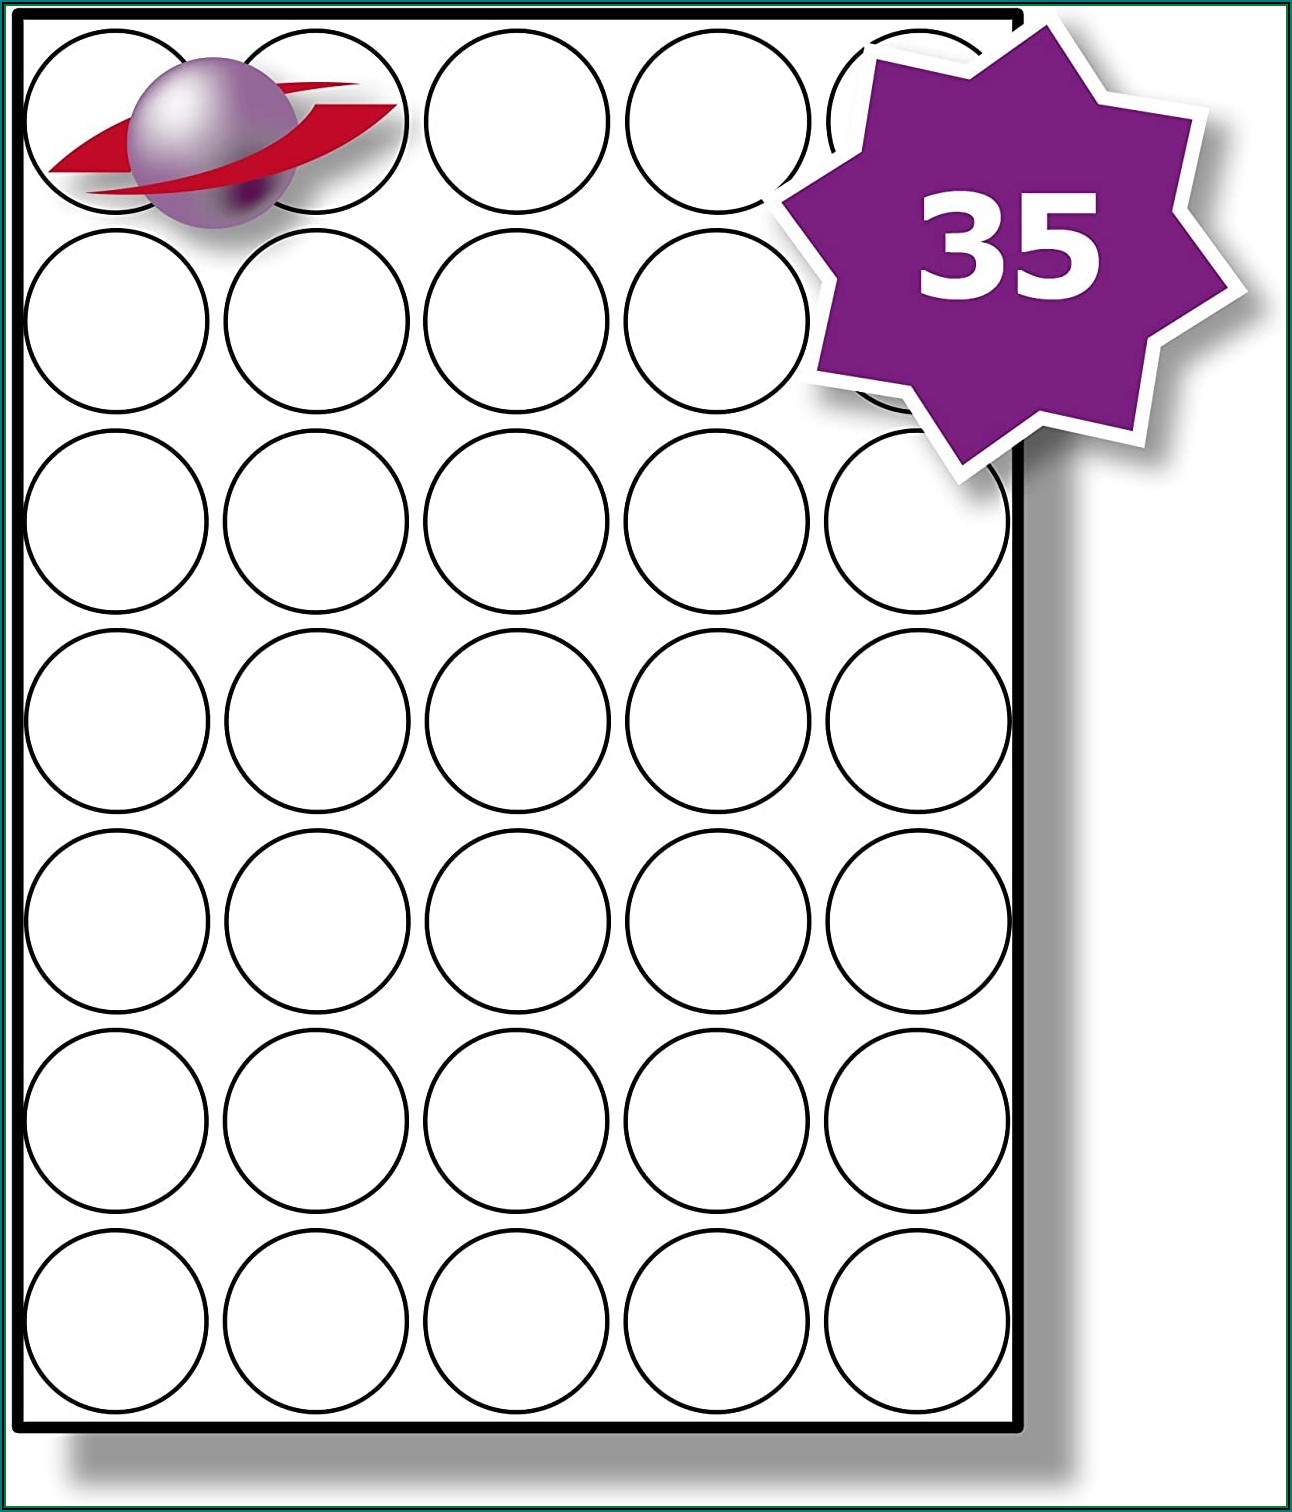 Avery E3613 Printable Round Stickers Template